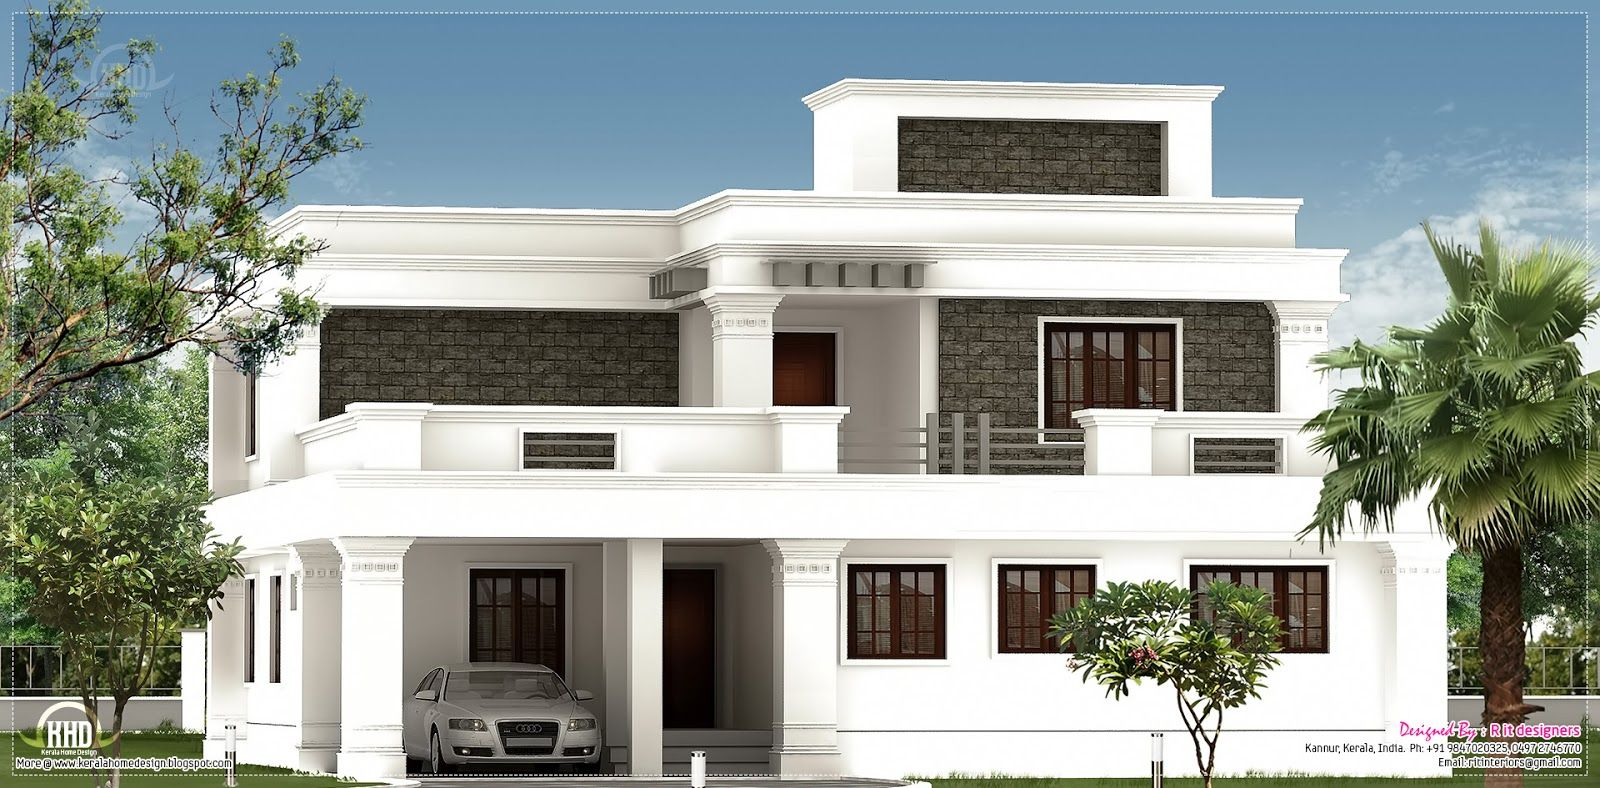 exterior design exterior houses house exteriors house roof indian